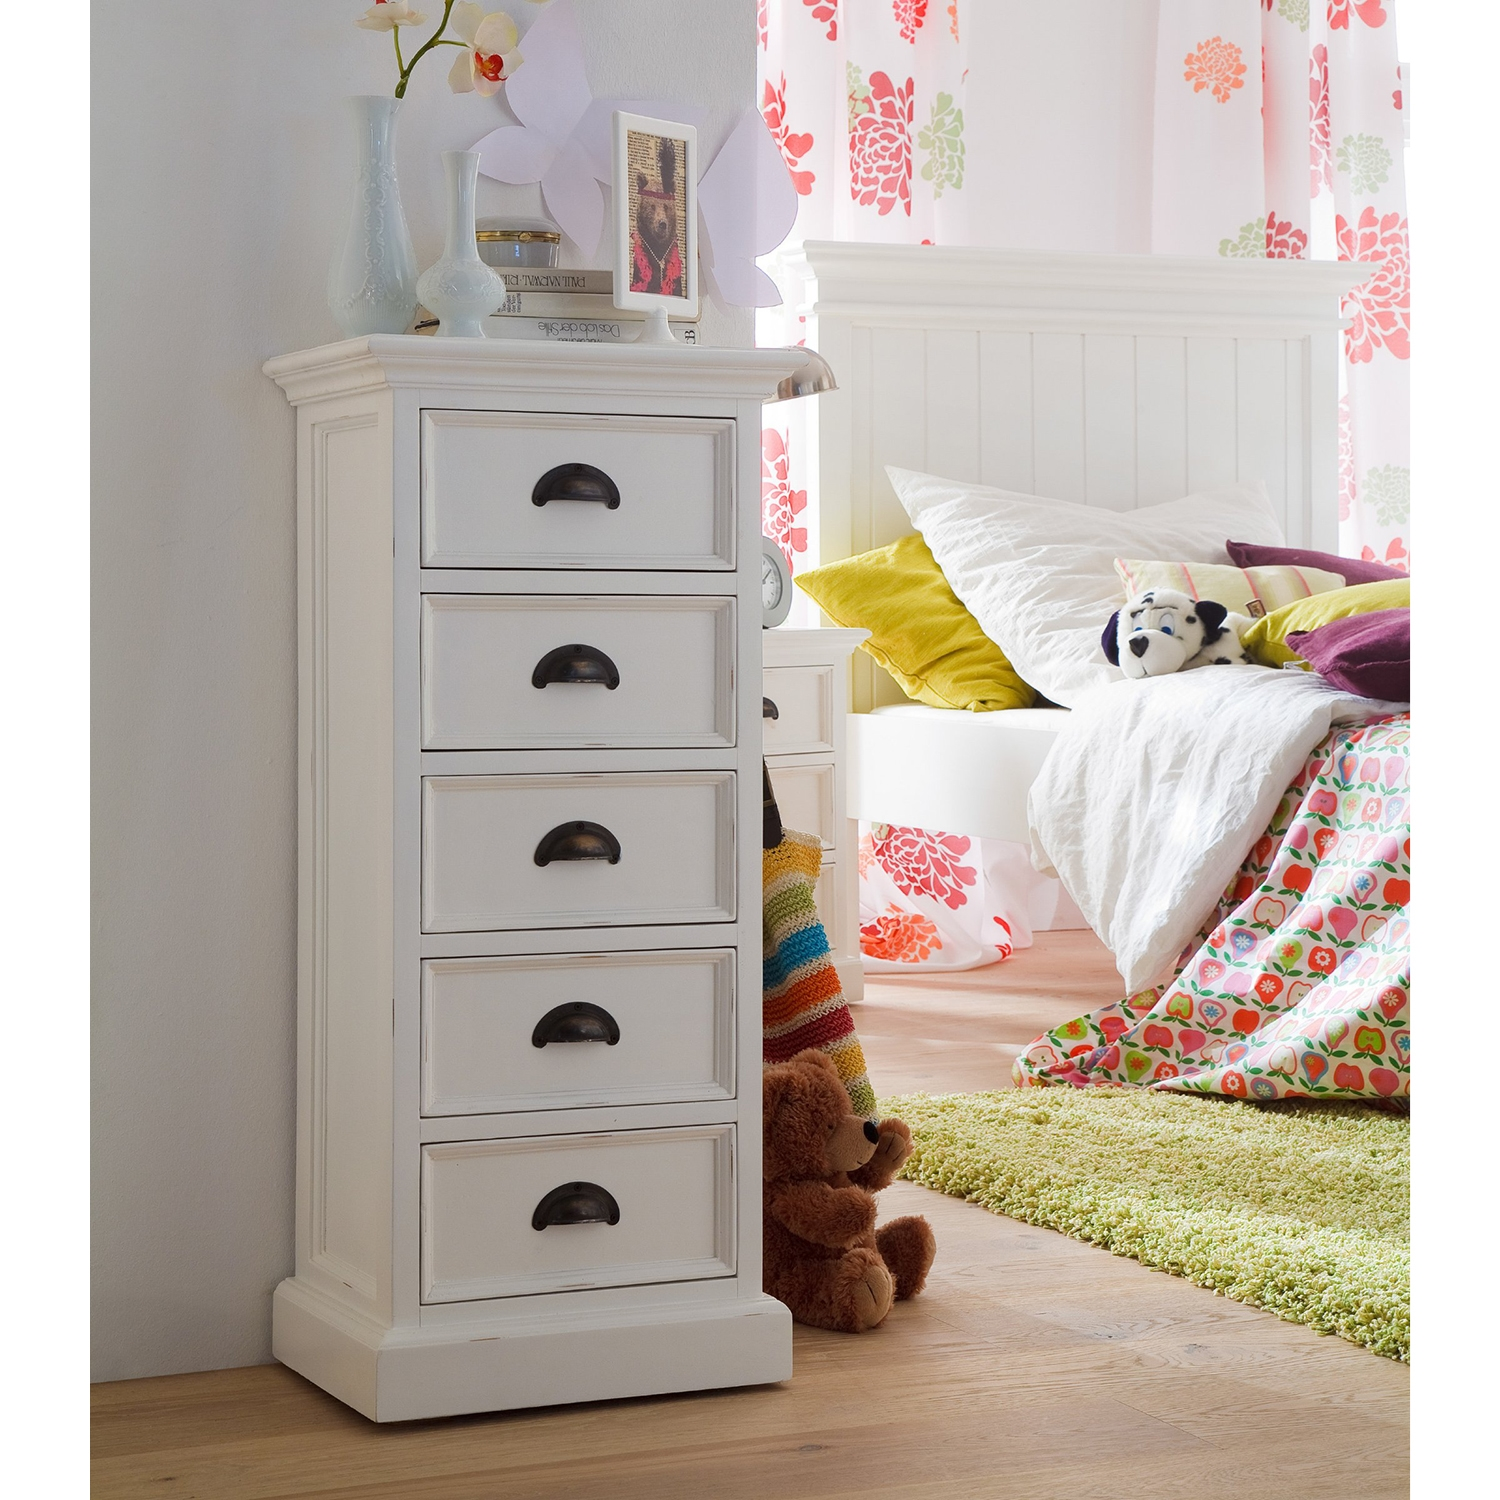 Halifax 5 Drawers Storage Unit - Pure White - NSOLO-CA600